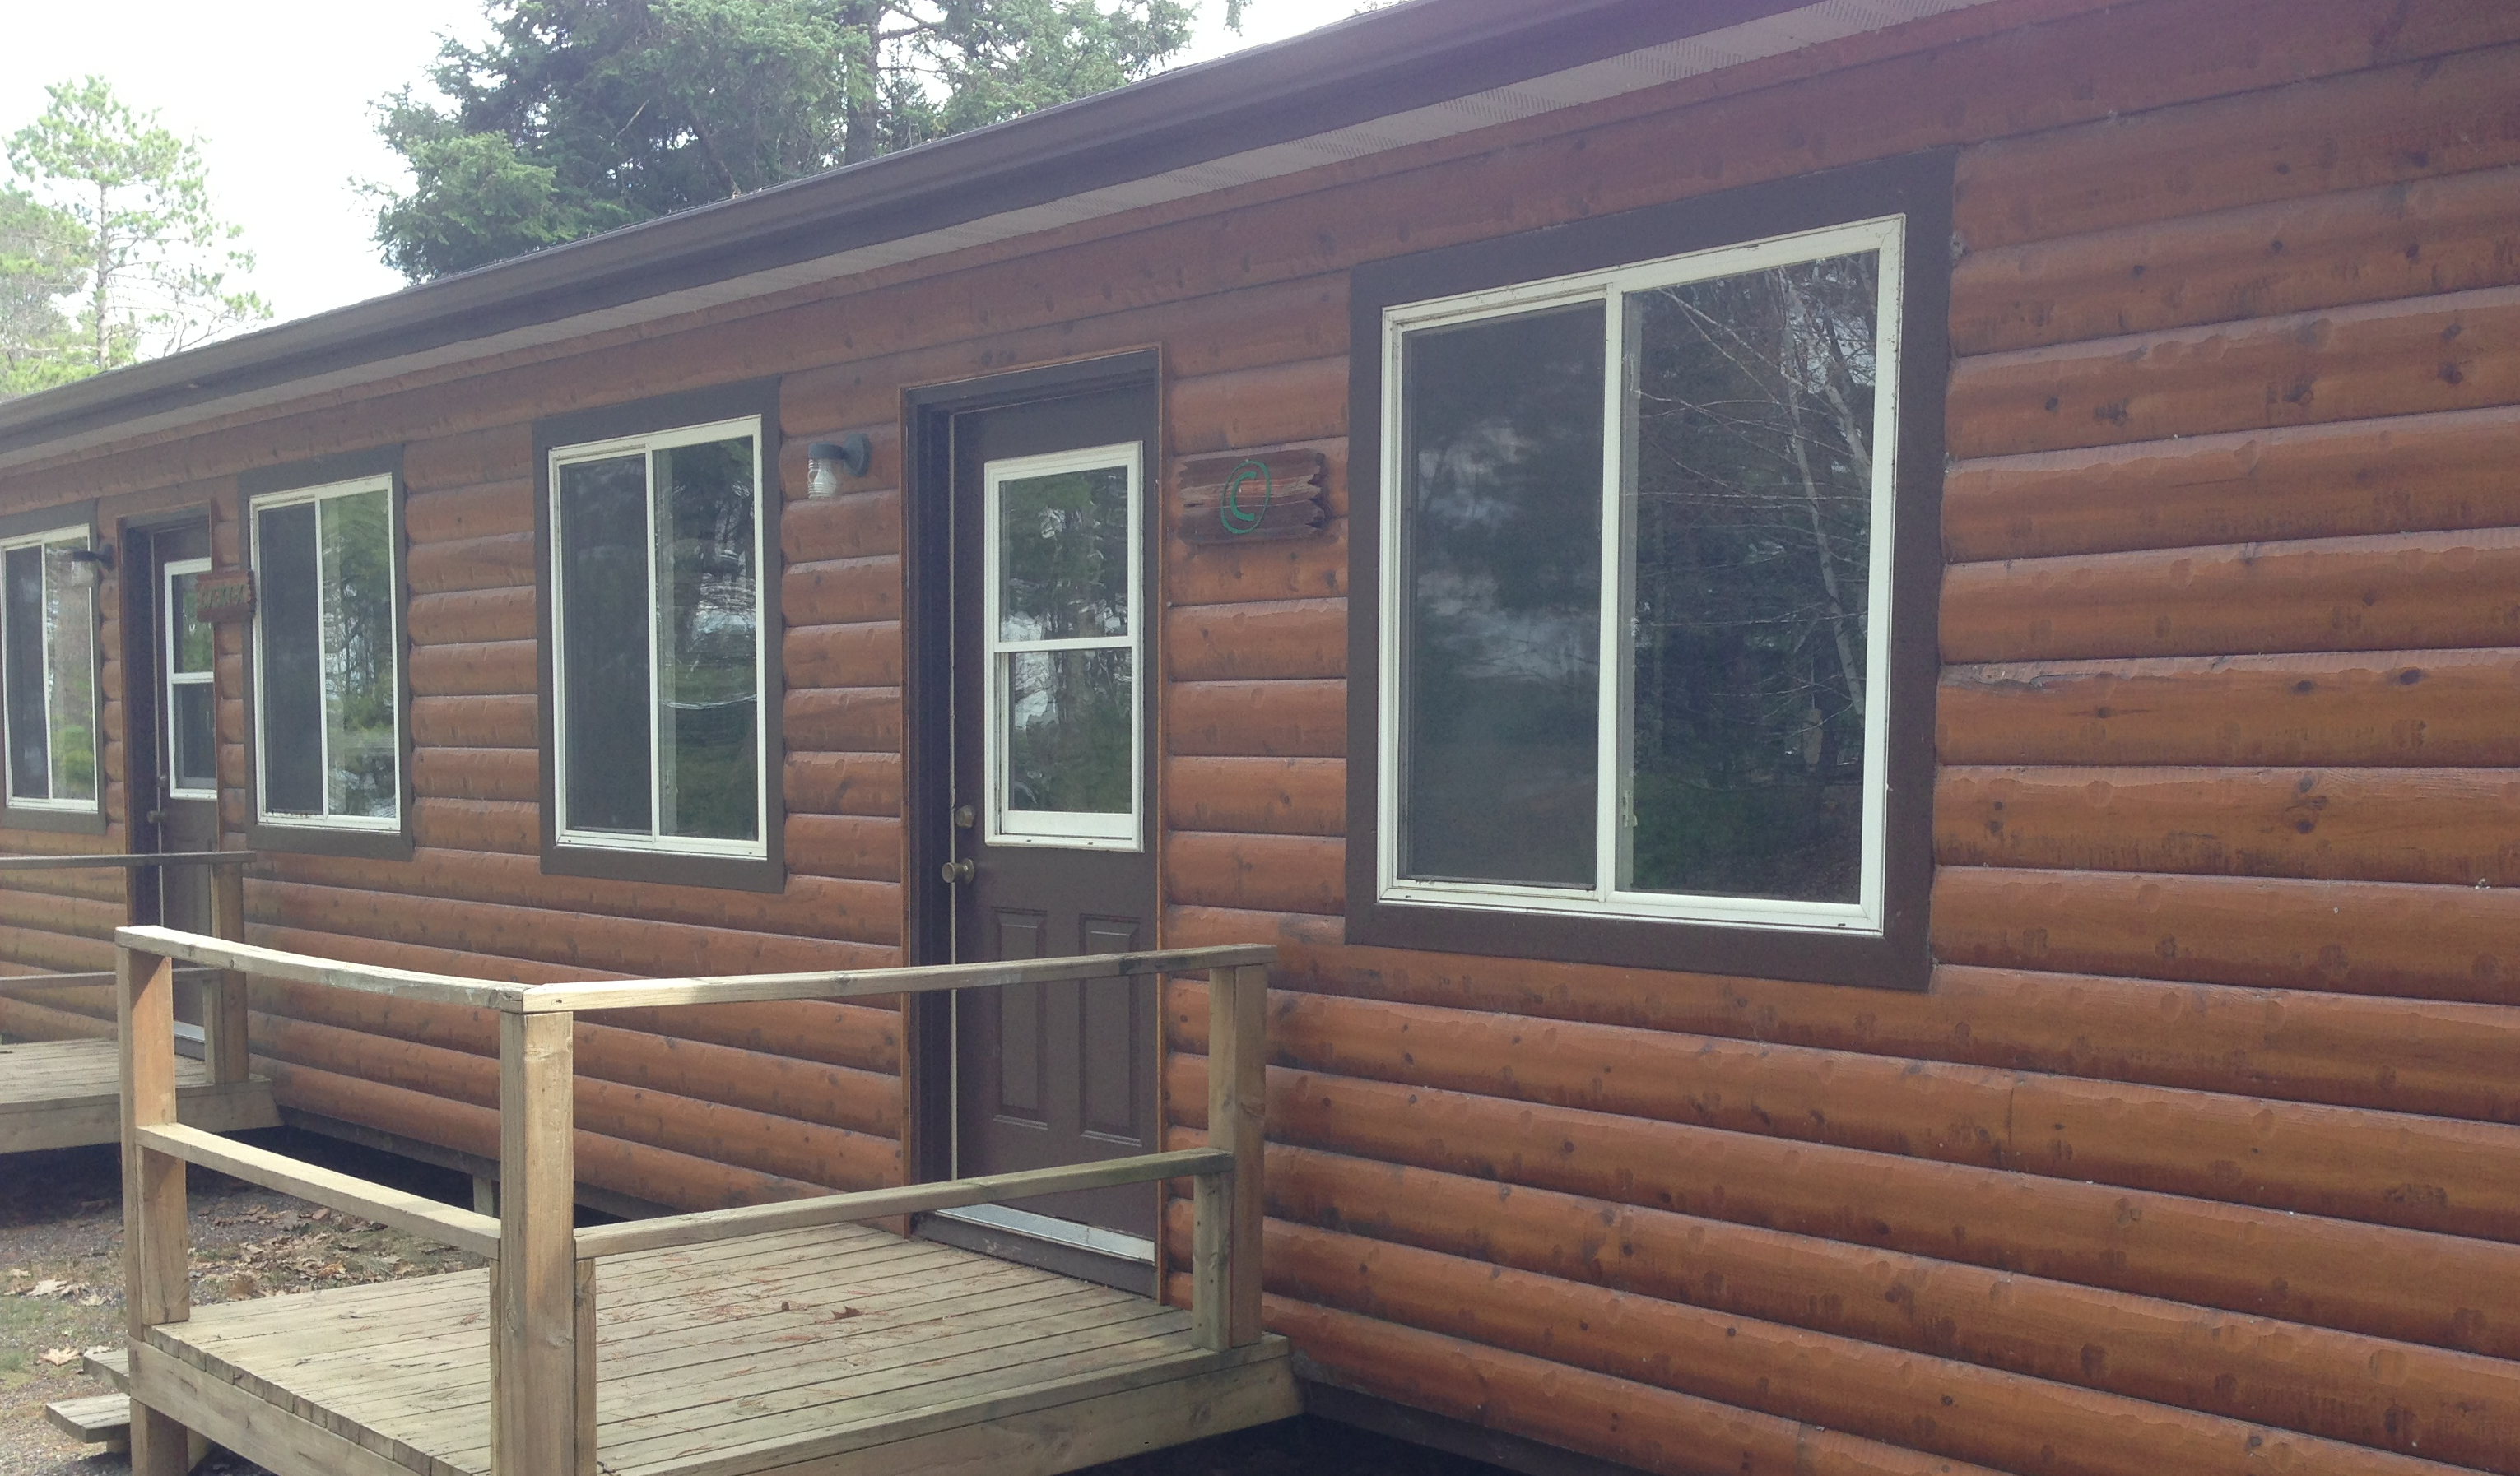 Bunk Life, The Crucial Element of Overnight Summer Camps for Girls